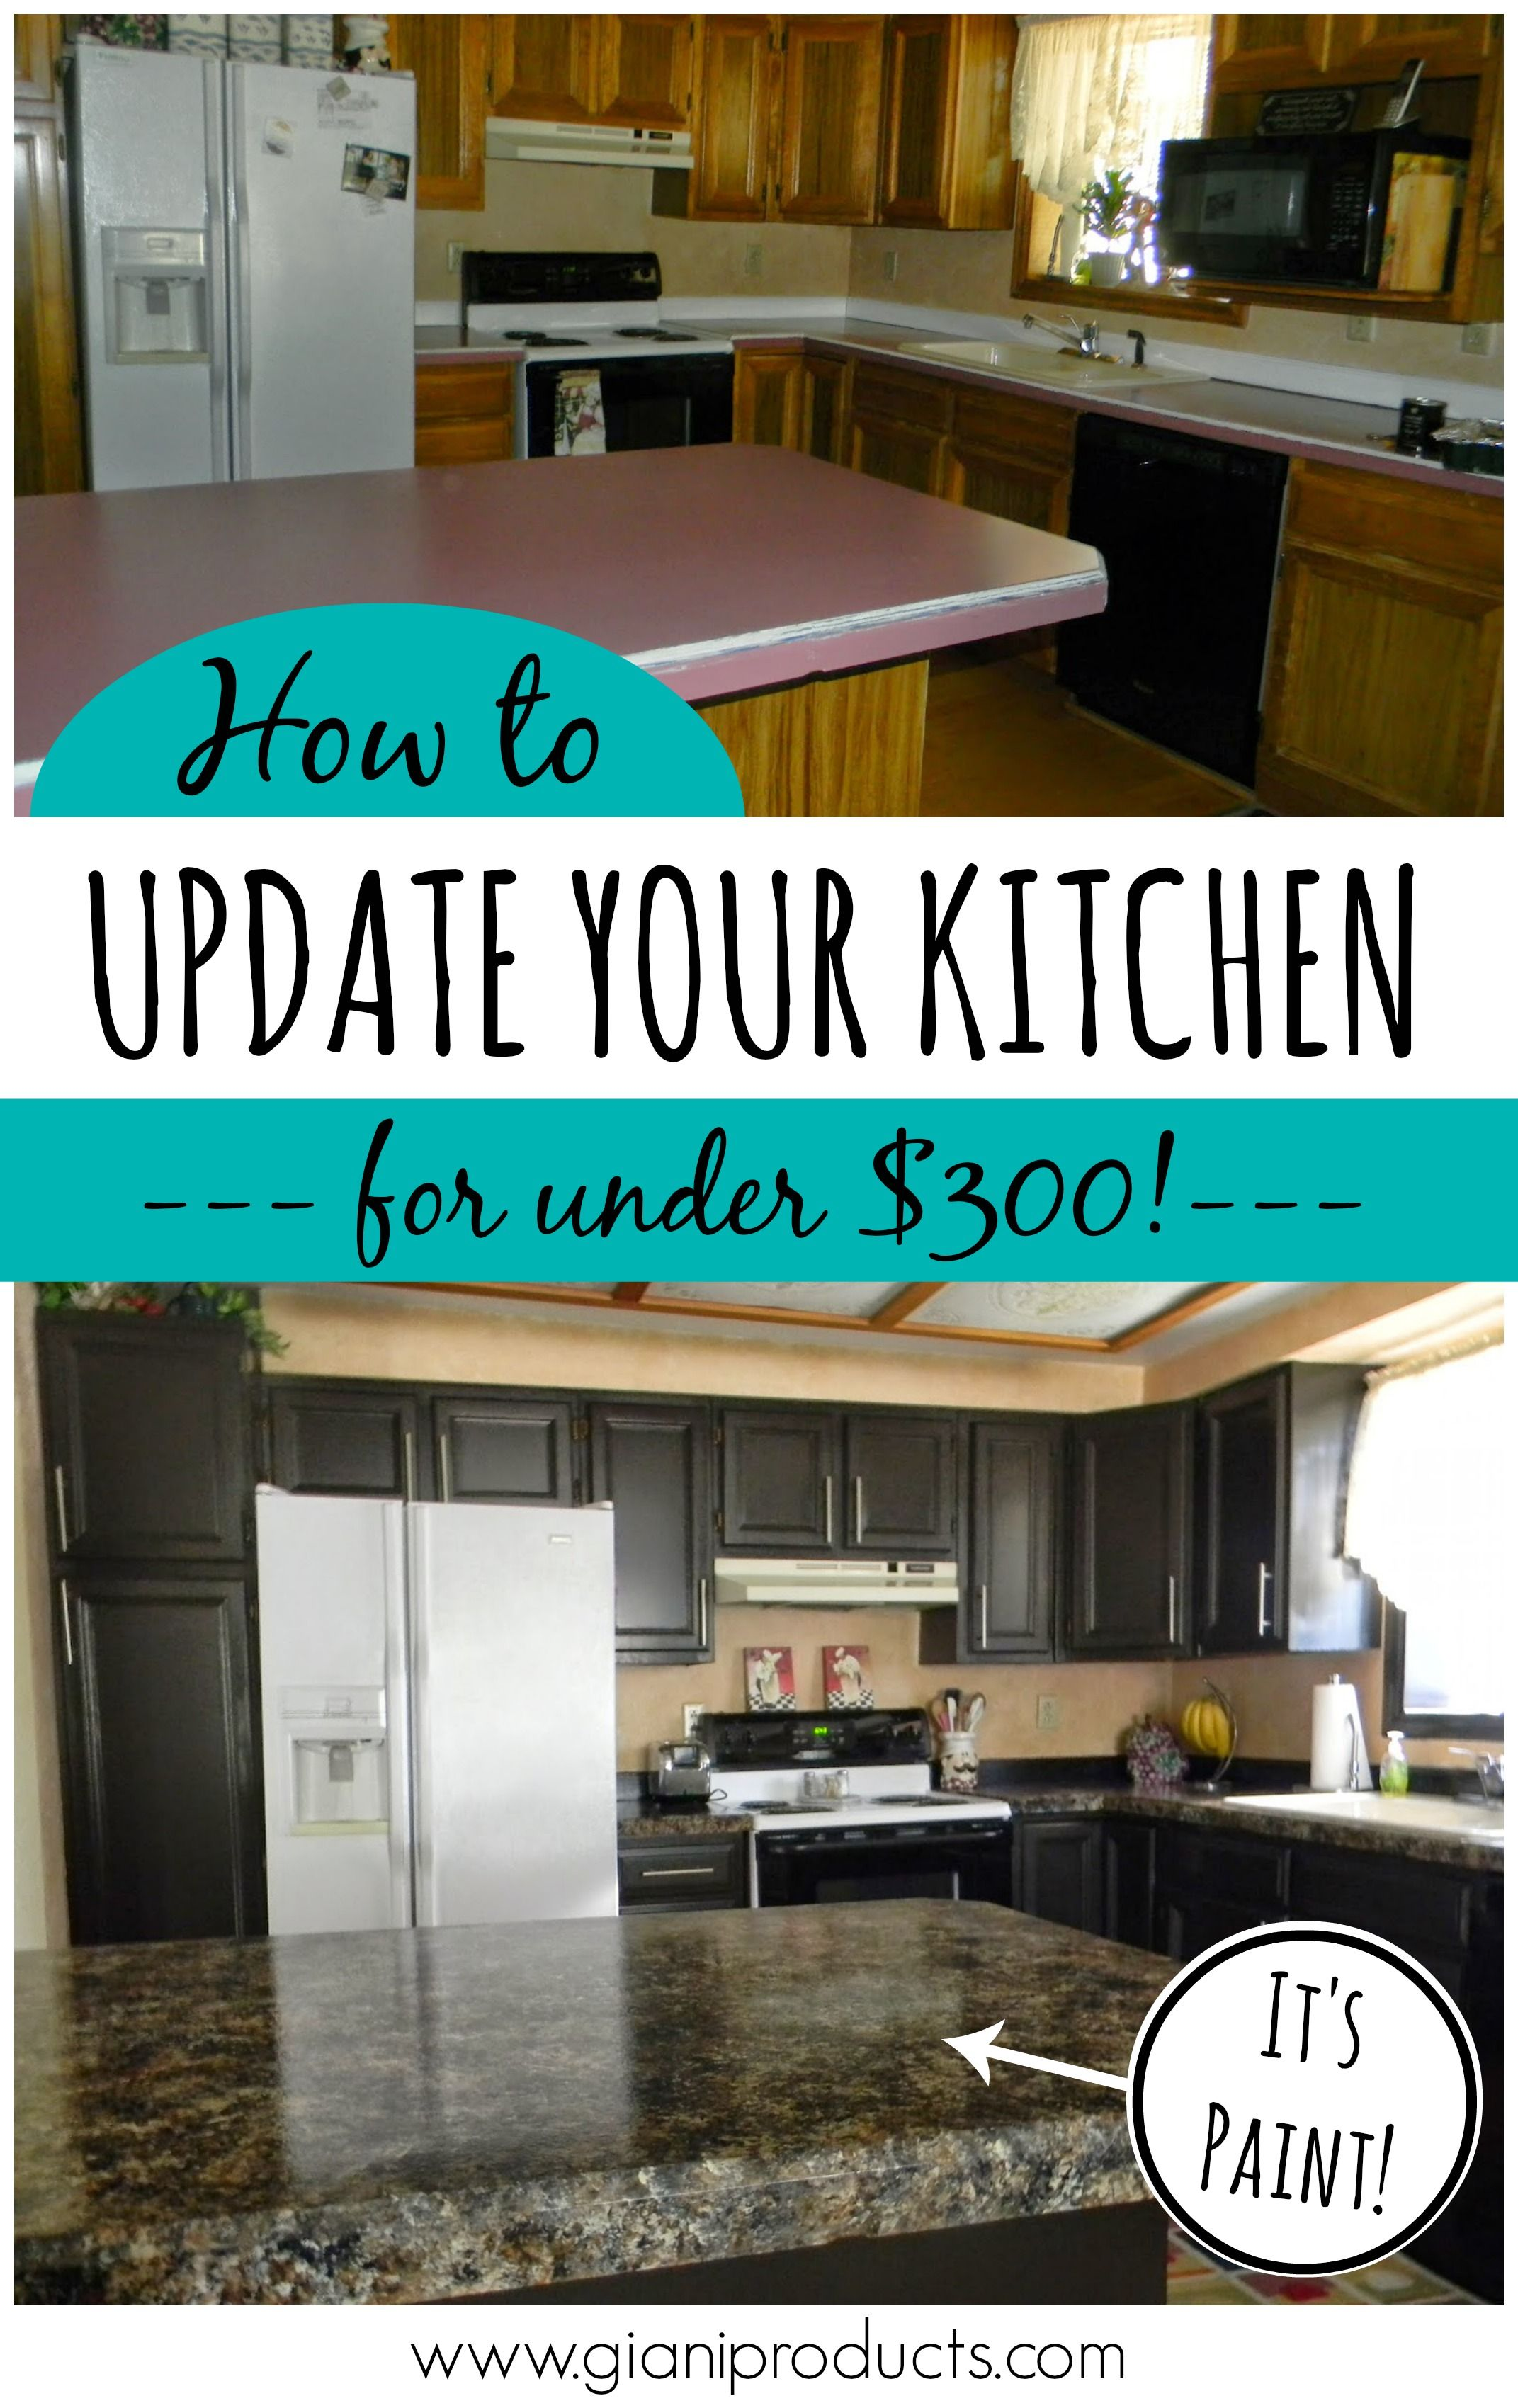 15 Do it Yourself Hacks and Clever Ideas To Upgrade Your Kitchen 1 ...